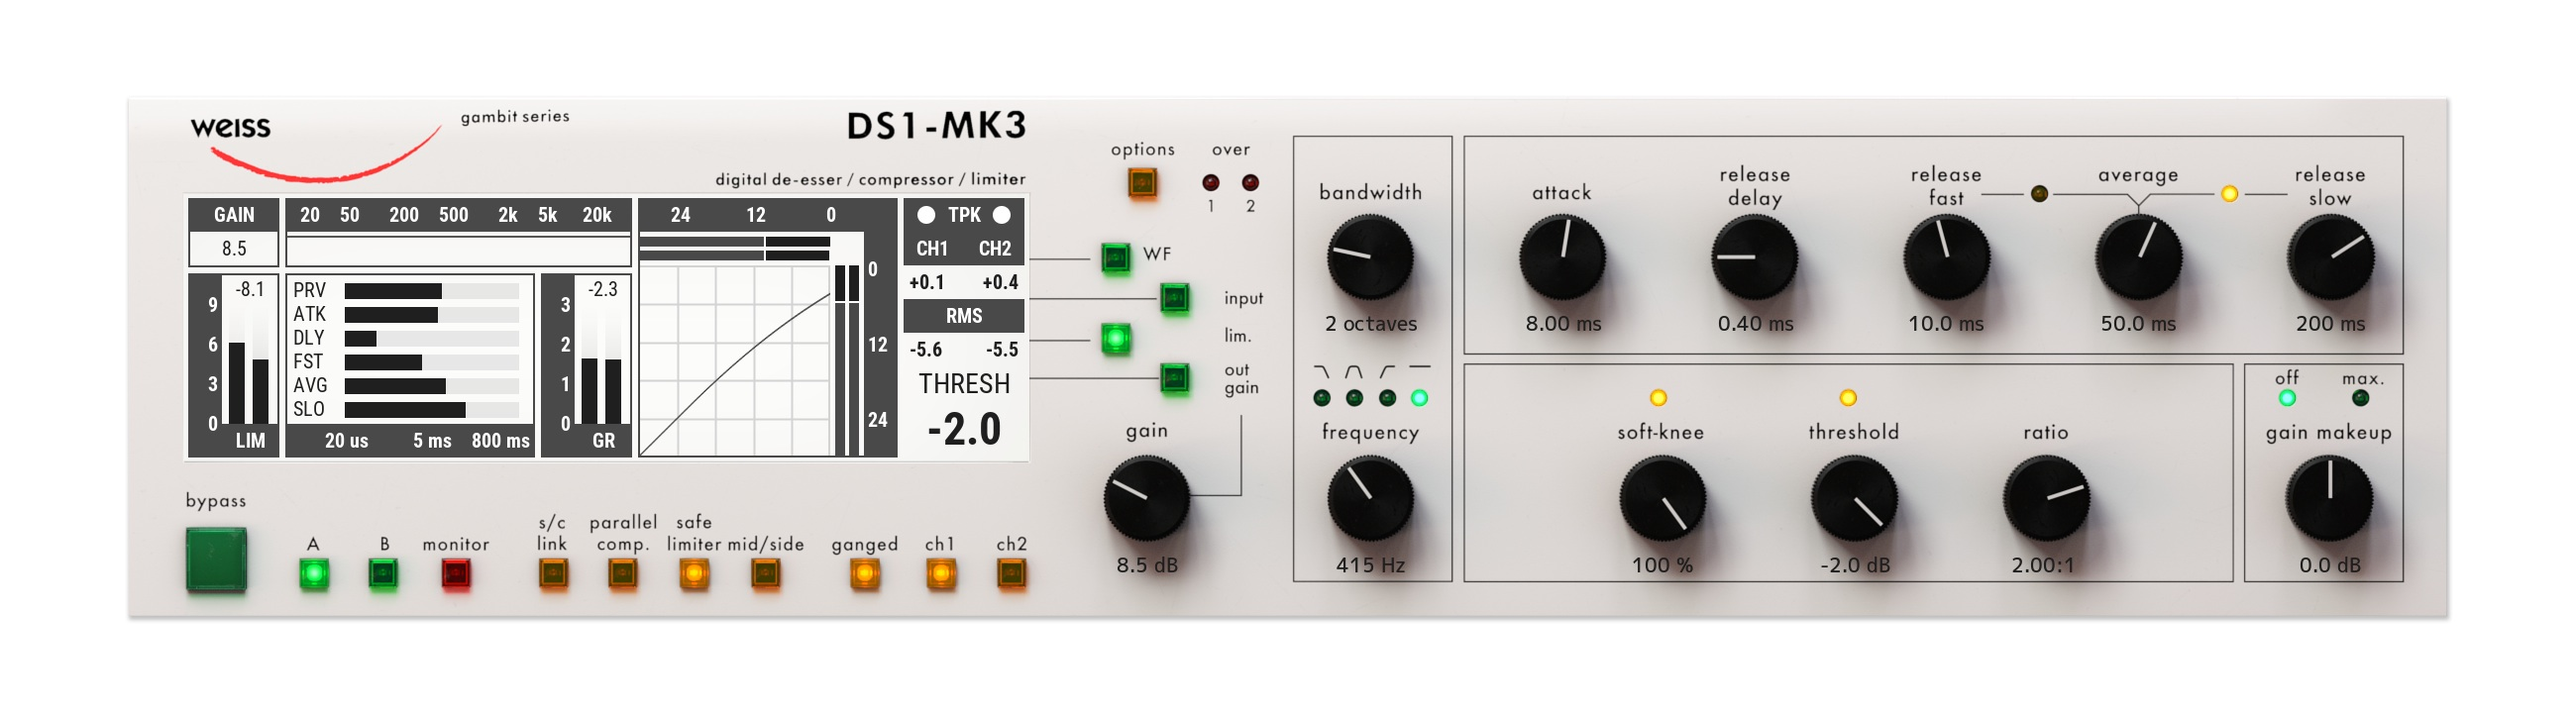 New Software Review: Weiss DS1-MK3 Mastering Processor by